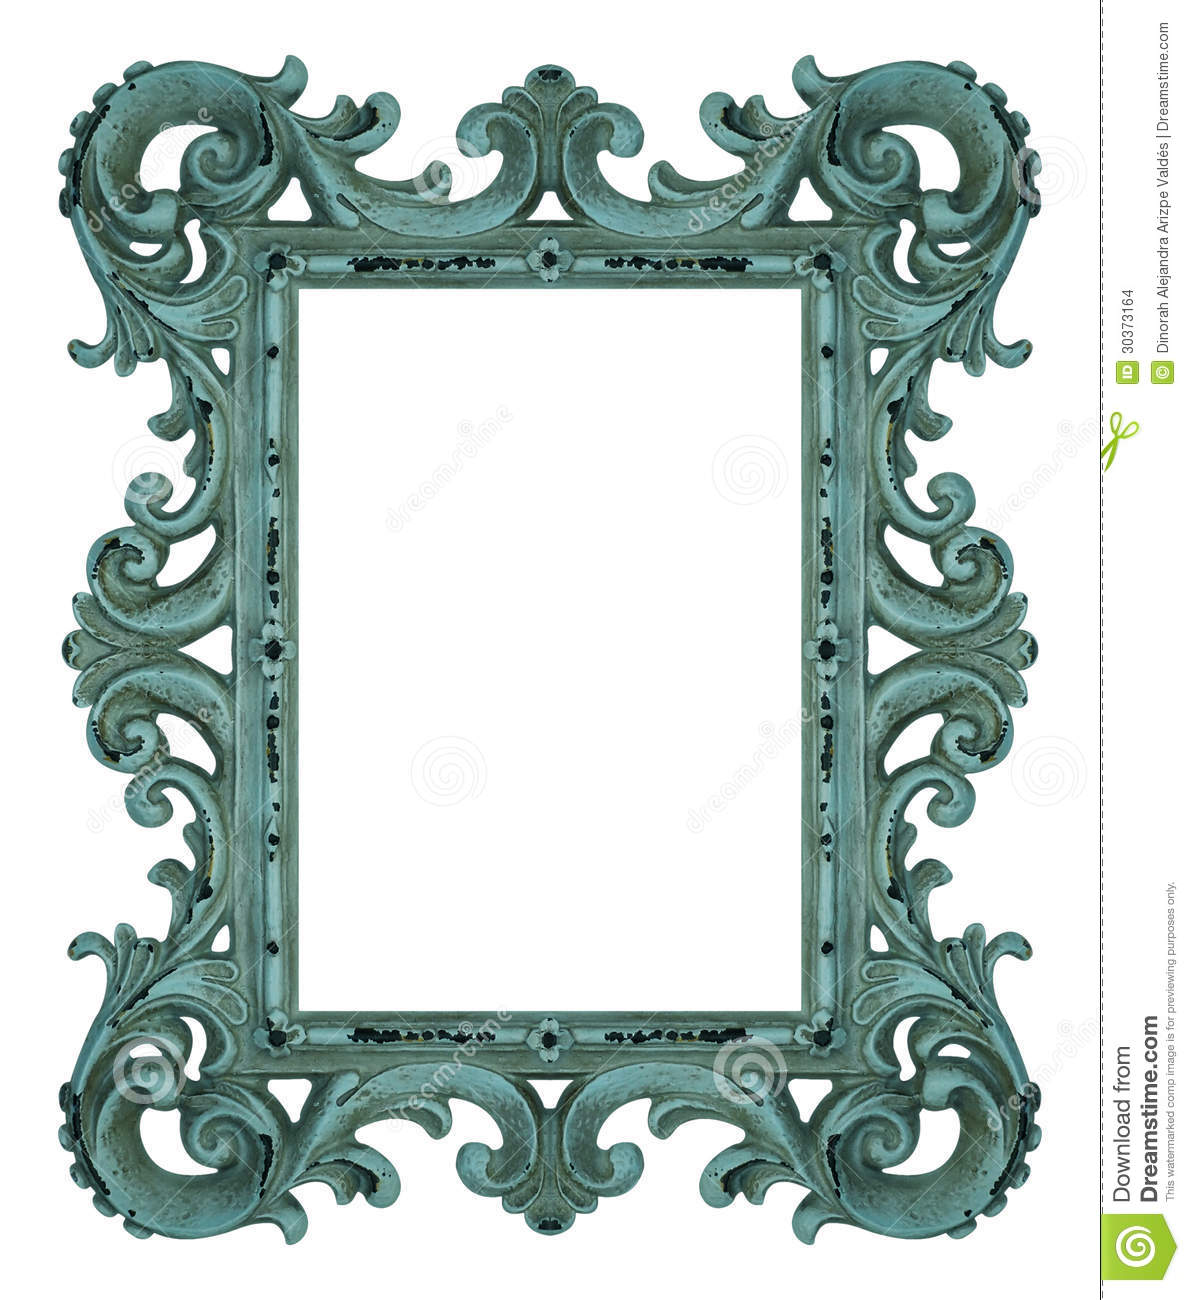 Rococo Frame Stock Images - Image: 30373164